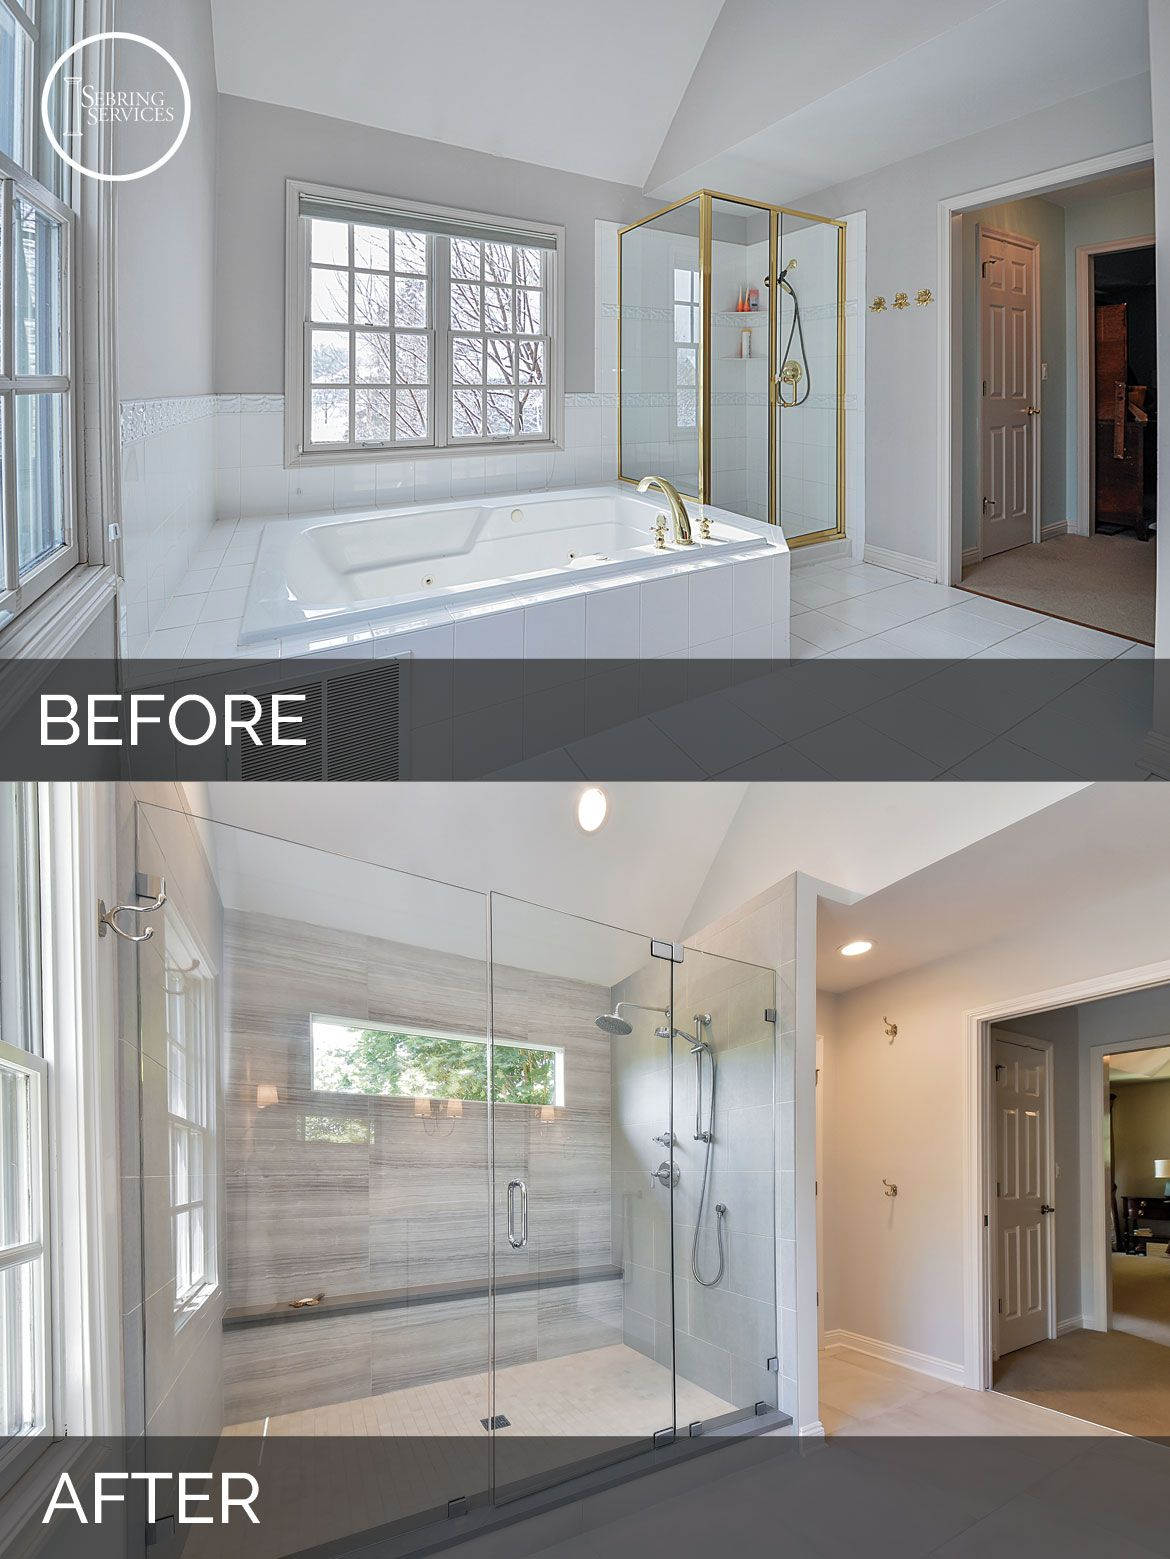 Carl susan 39 s master bath before after pictures for Master bathroom ideas